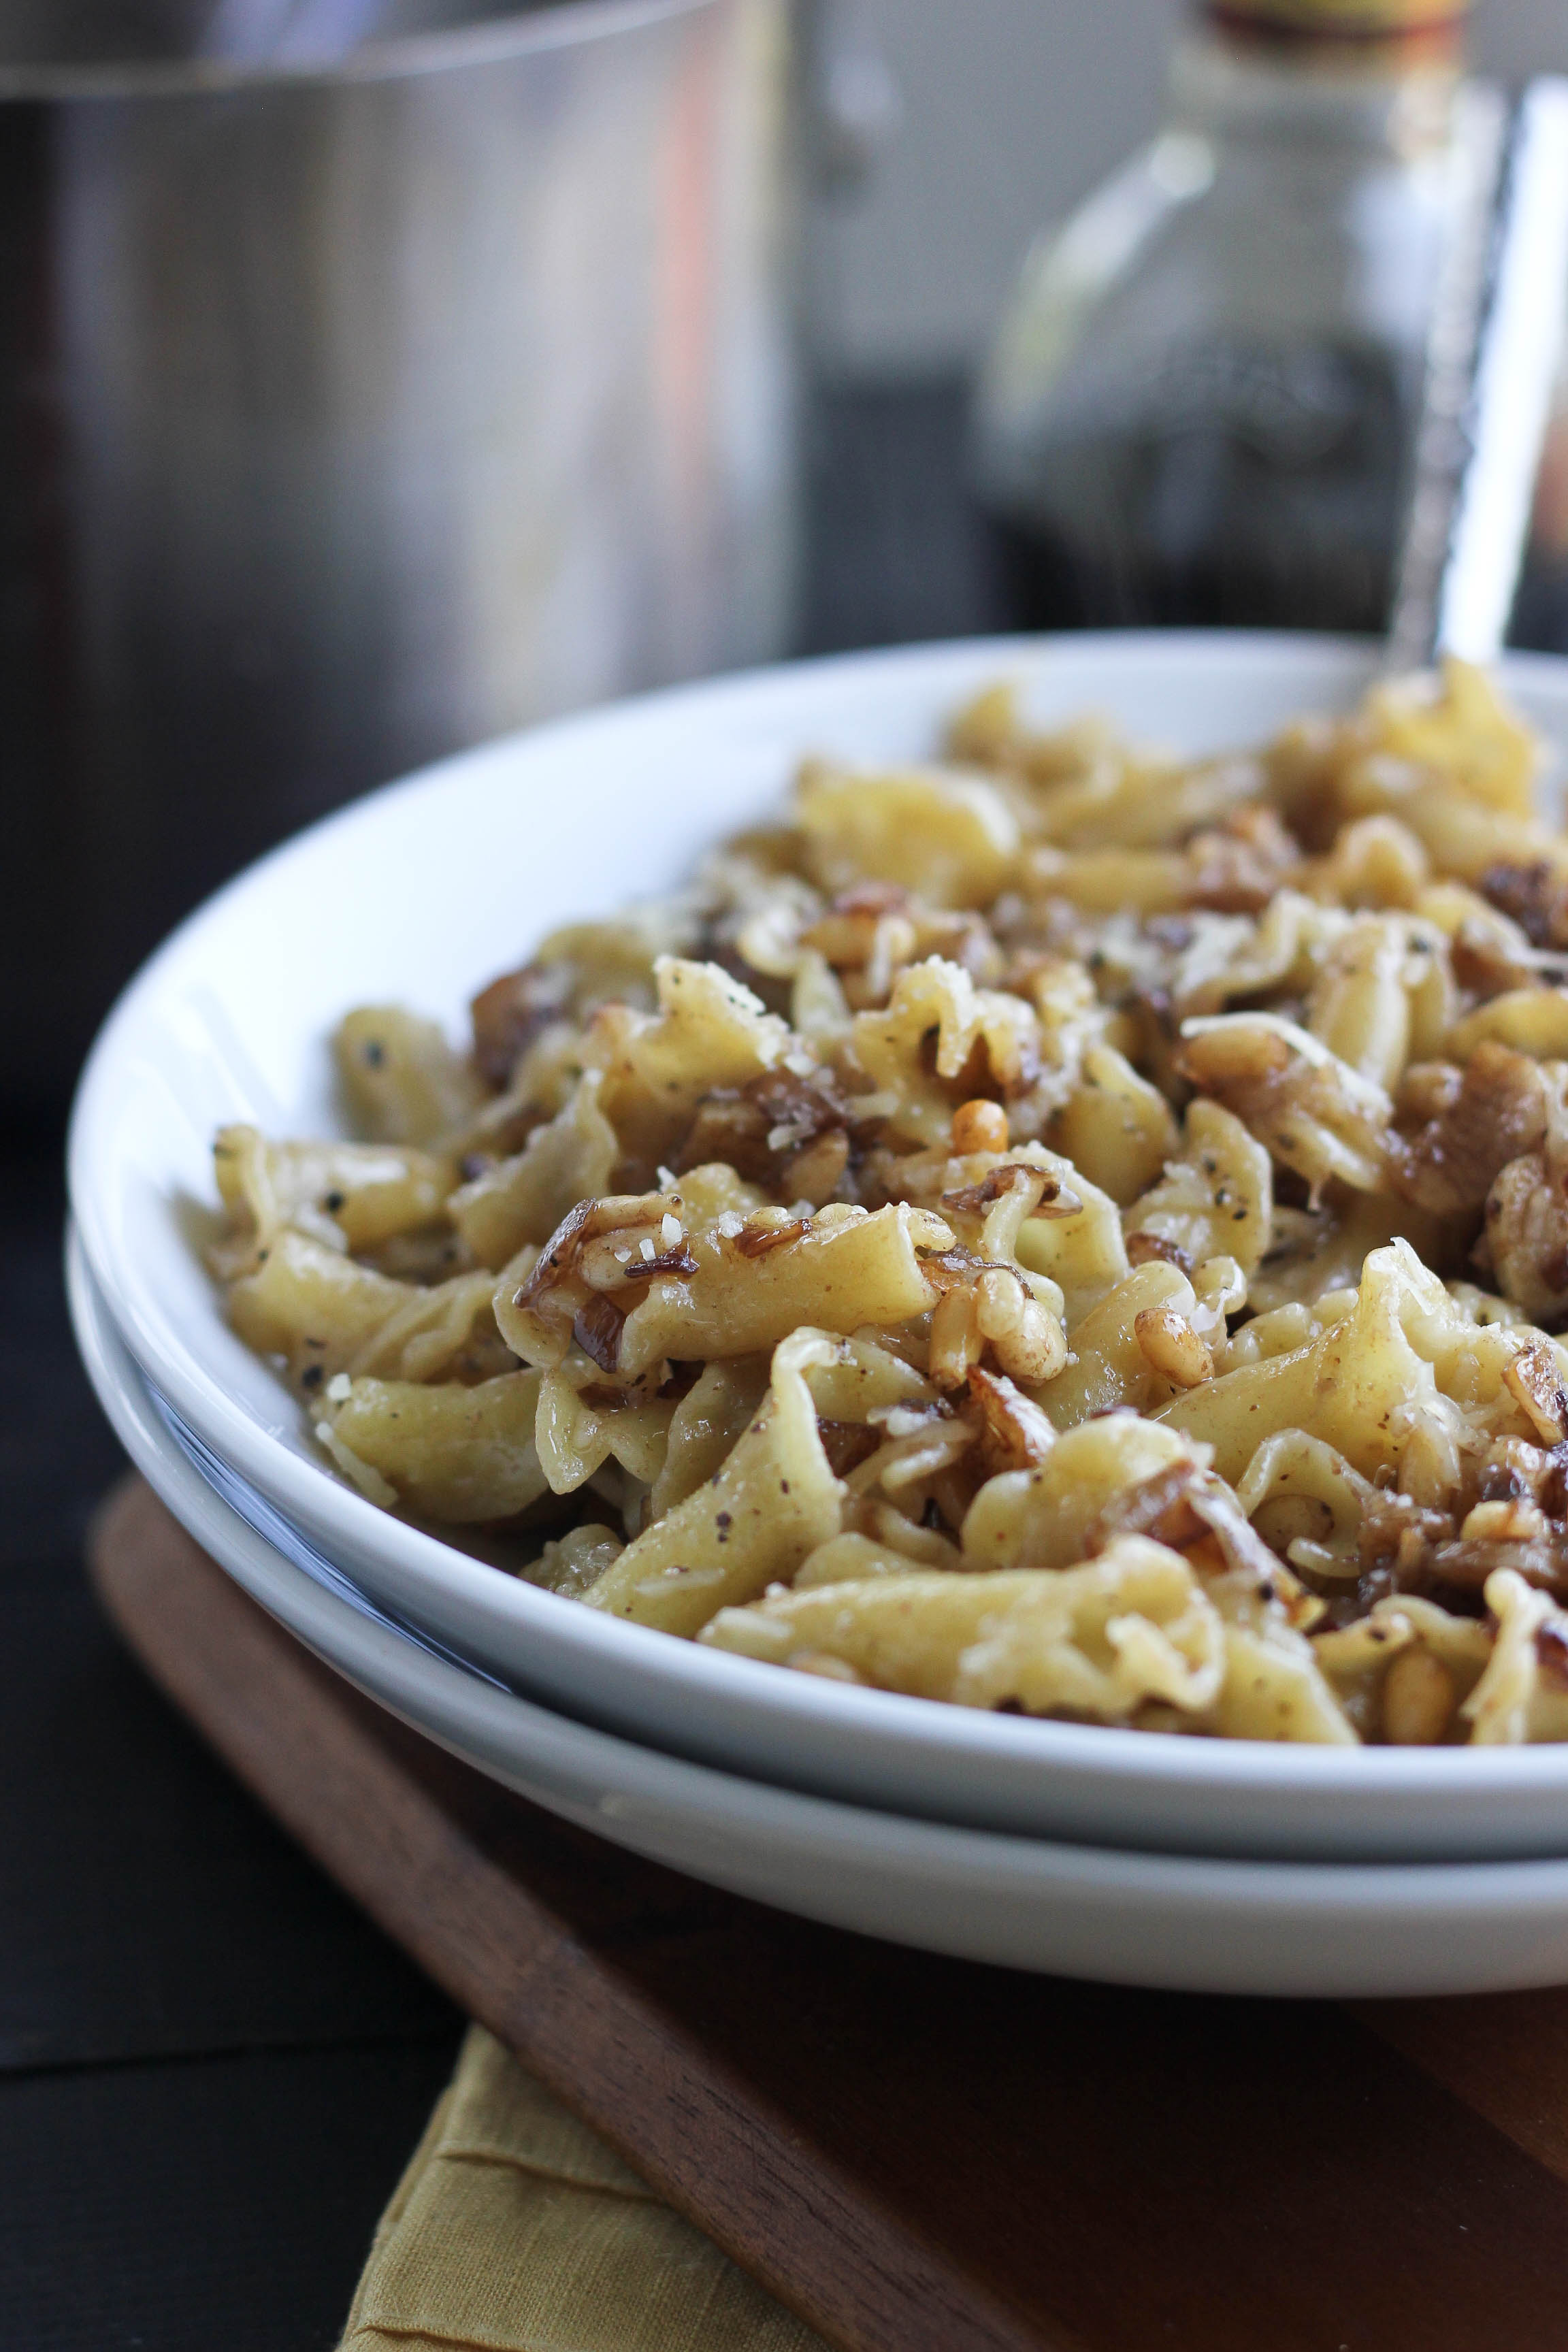 Balsamic Pasta with Garlic & Pine Nuts | Bake Your Day